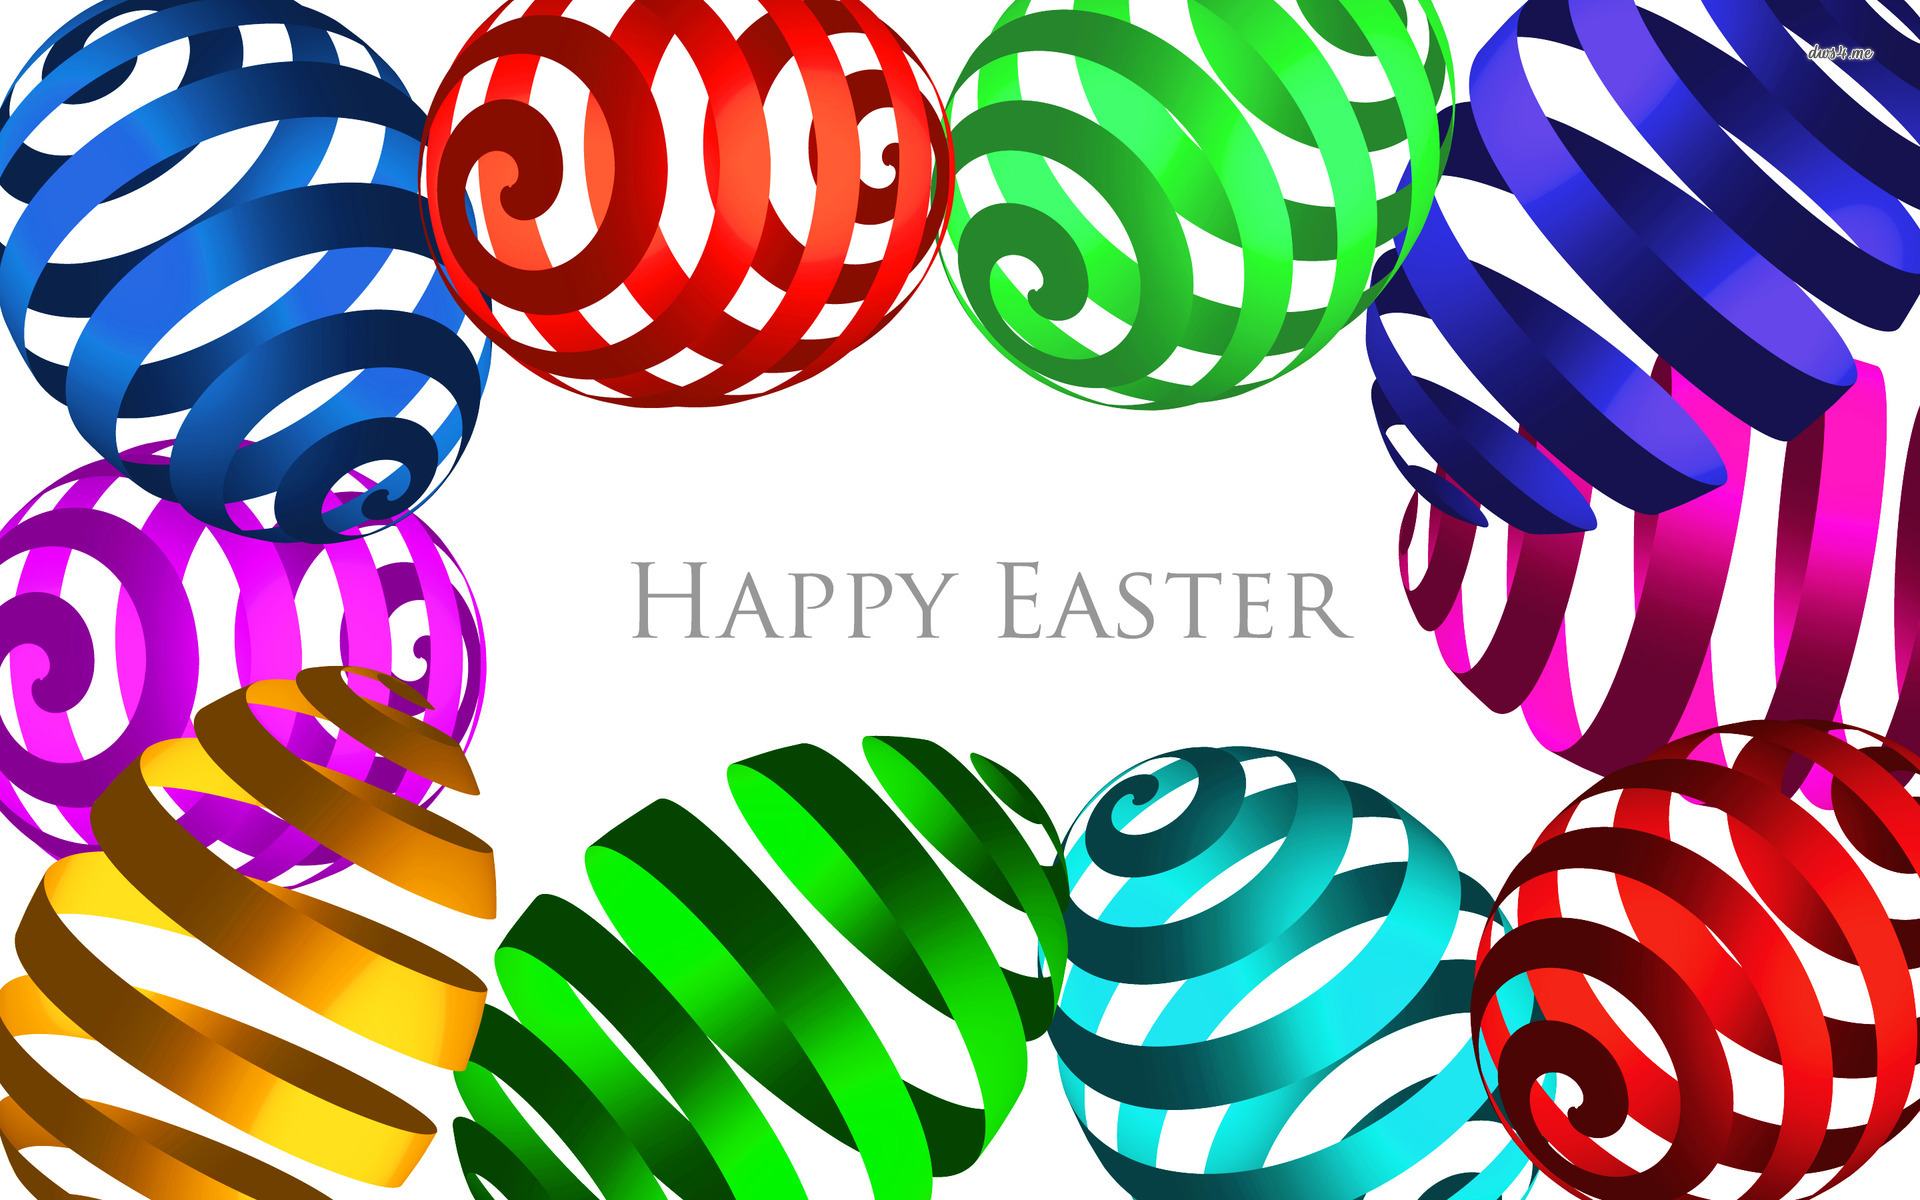 Happy Easter Day Wallpaper Hd 38 70110 Full Hd Wallpapers